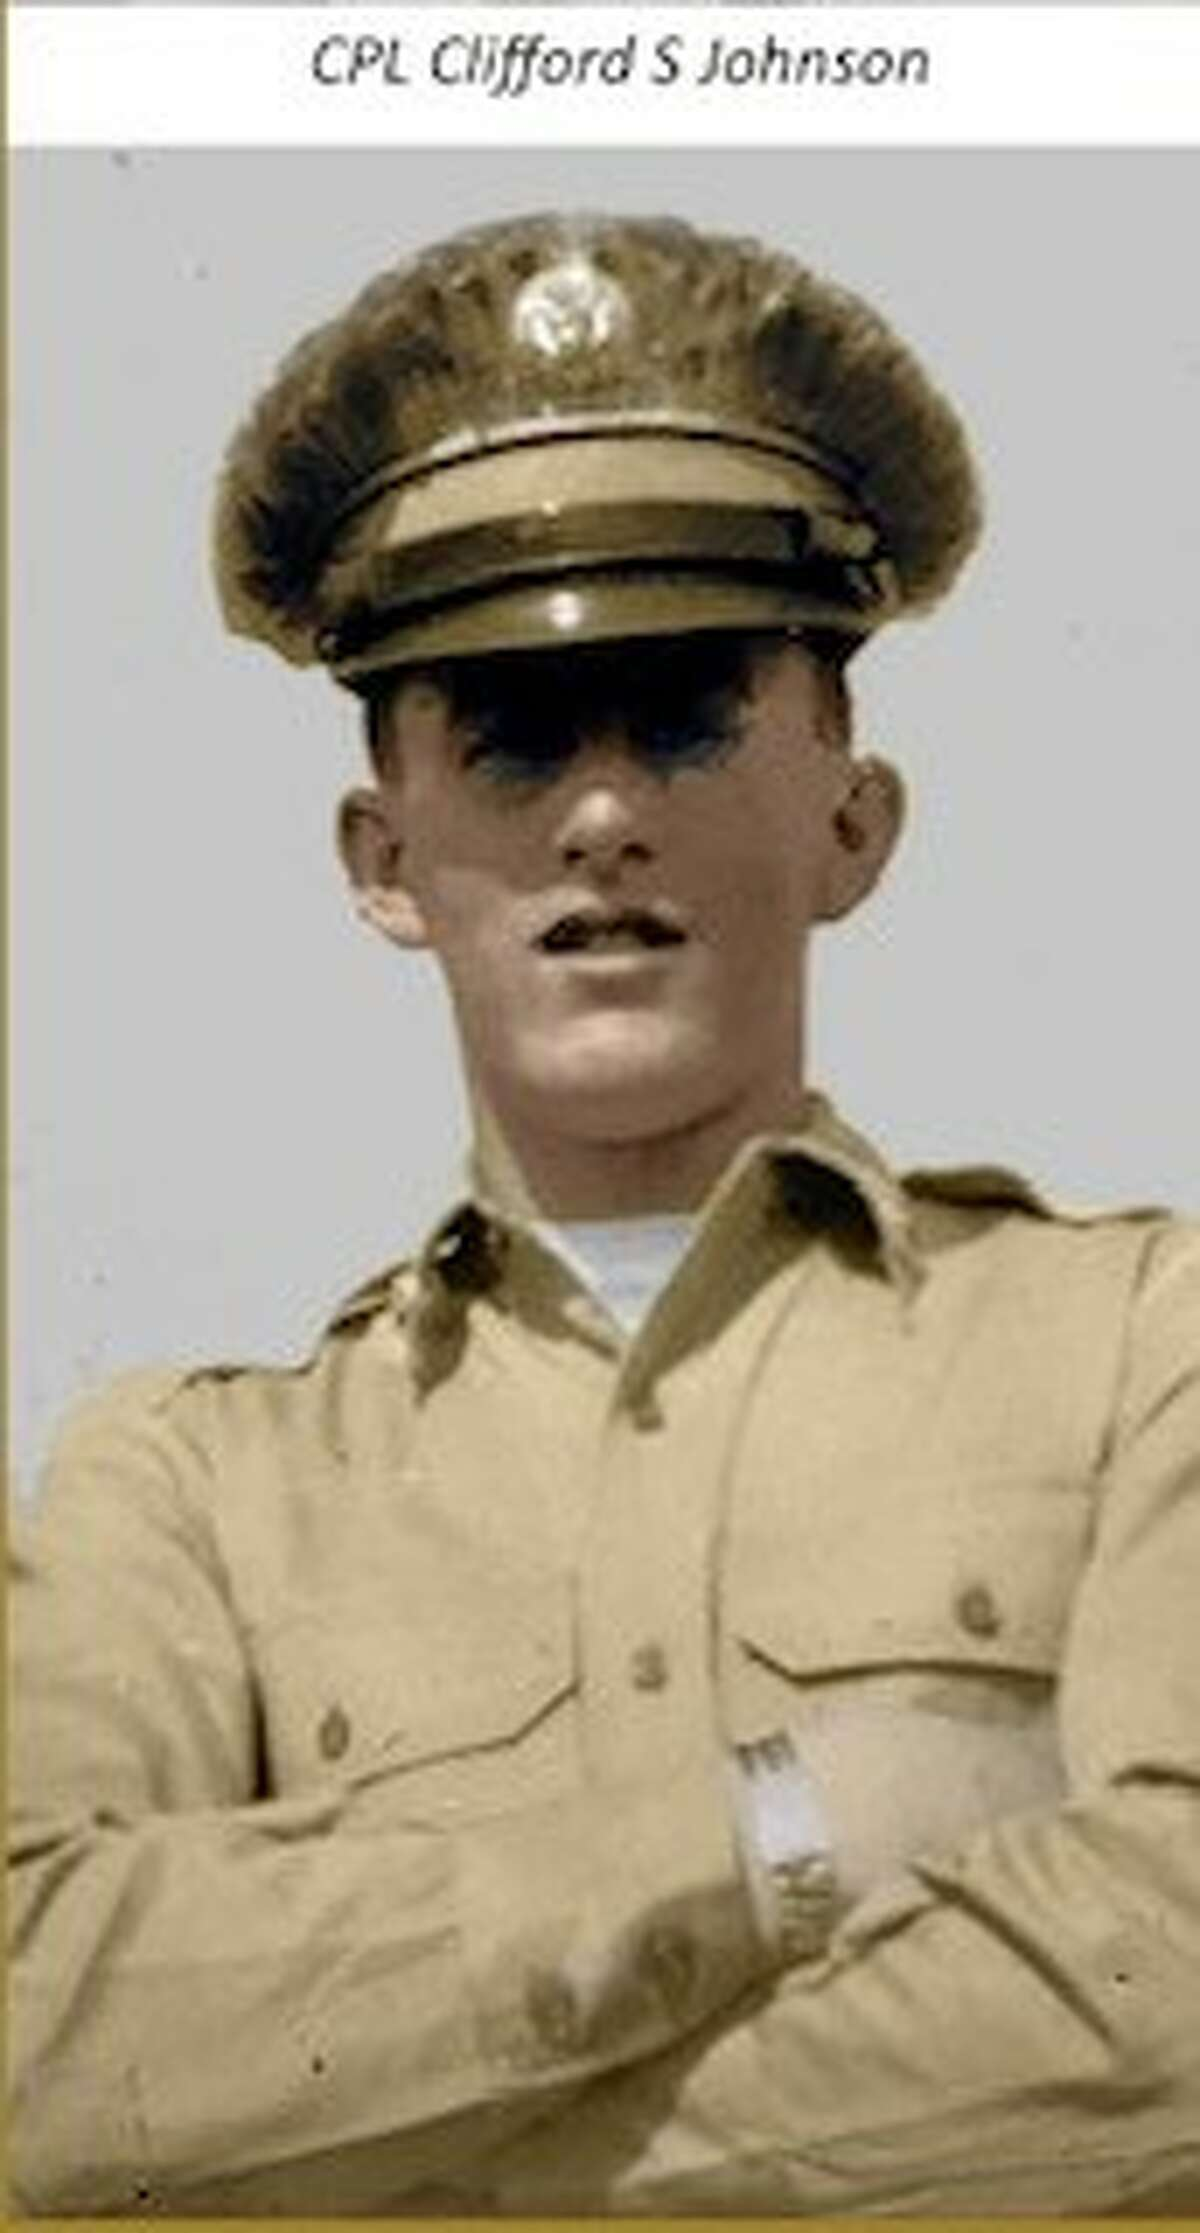 Clifford S. Johnson of Valatie was 20 when he was killed in combat in North Korea in December 1950.